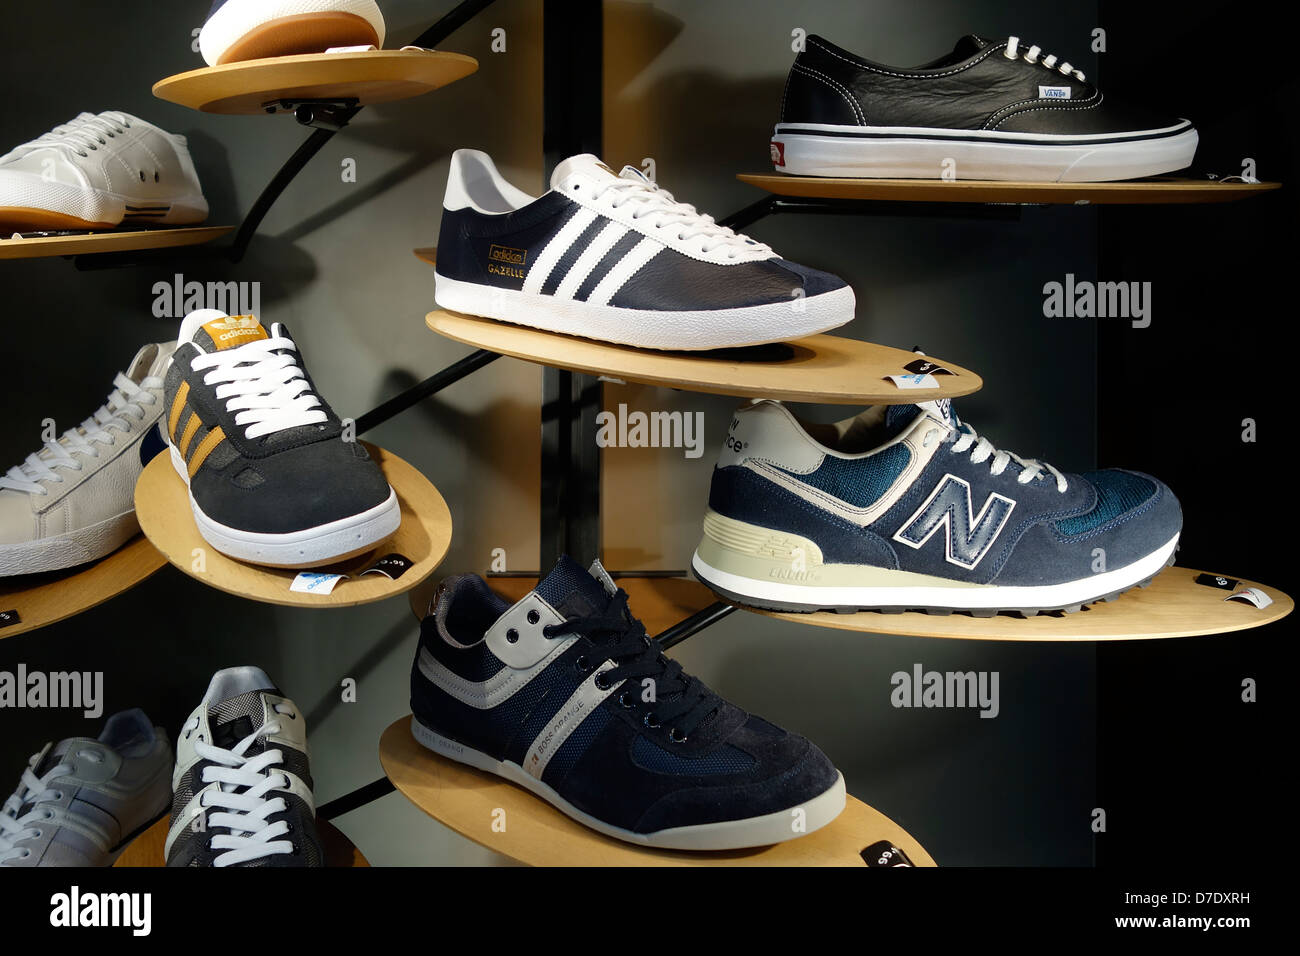 Trainers Shop Window Display Adidas - Stock Image